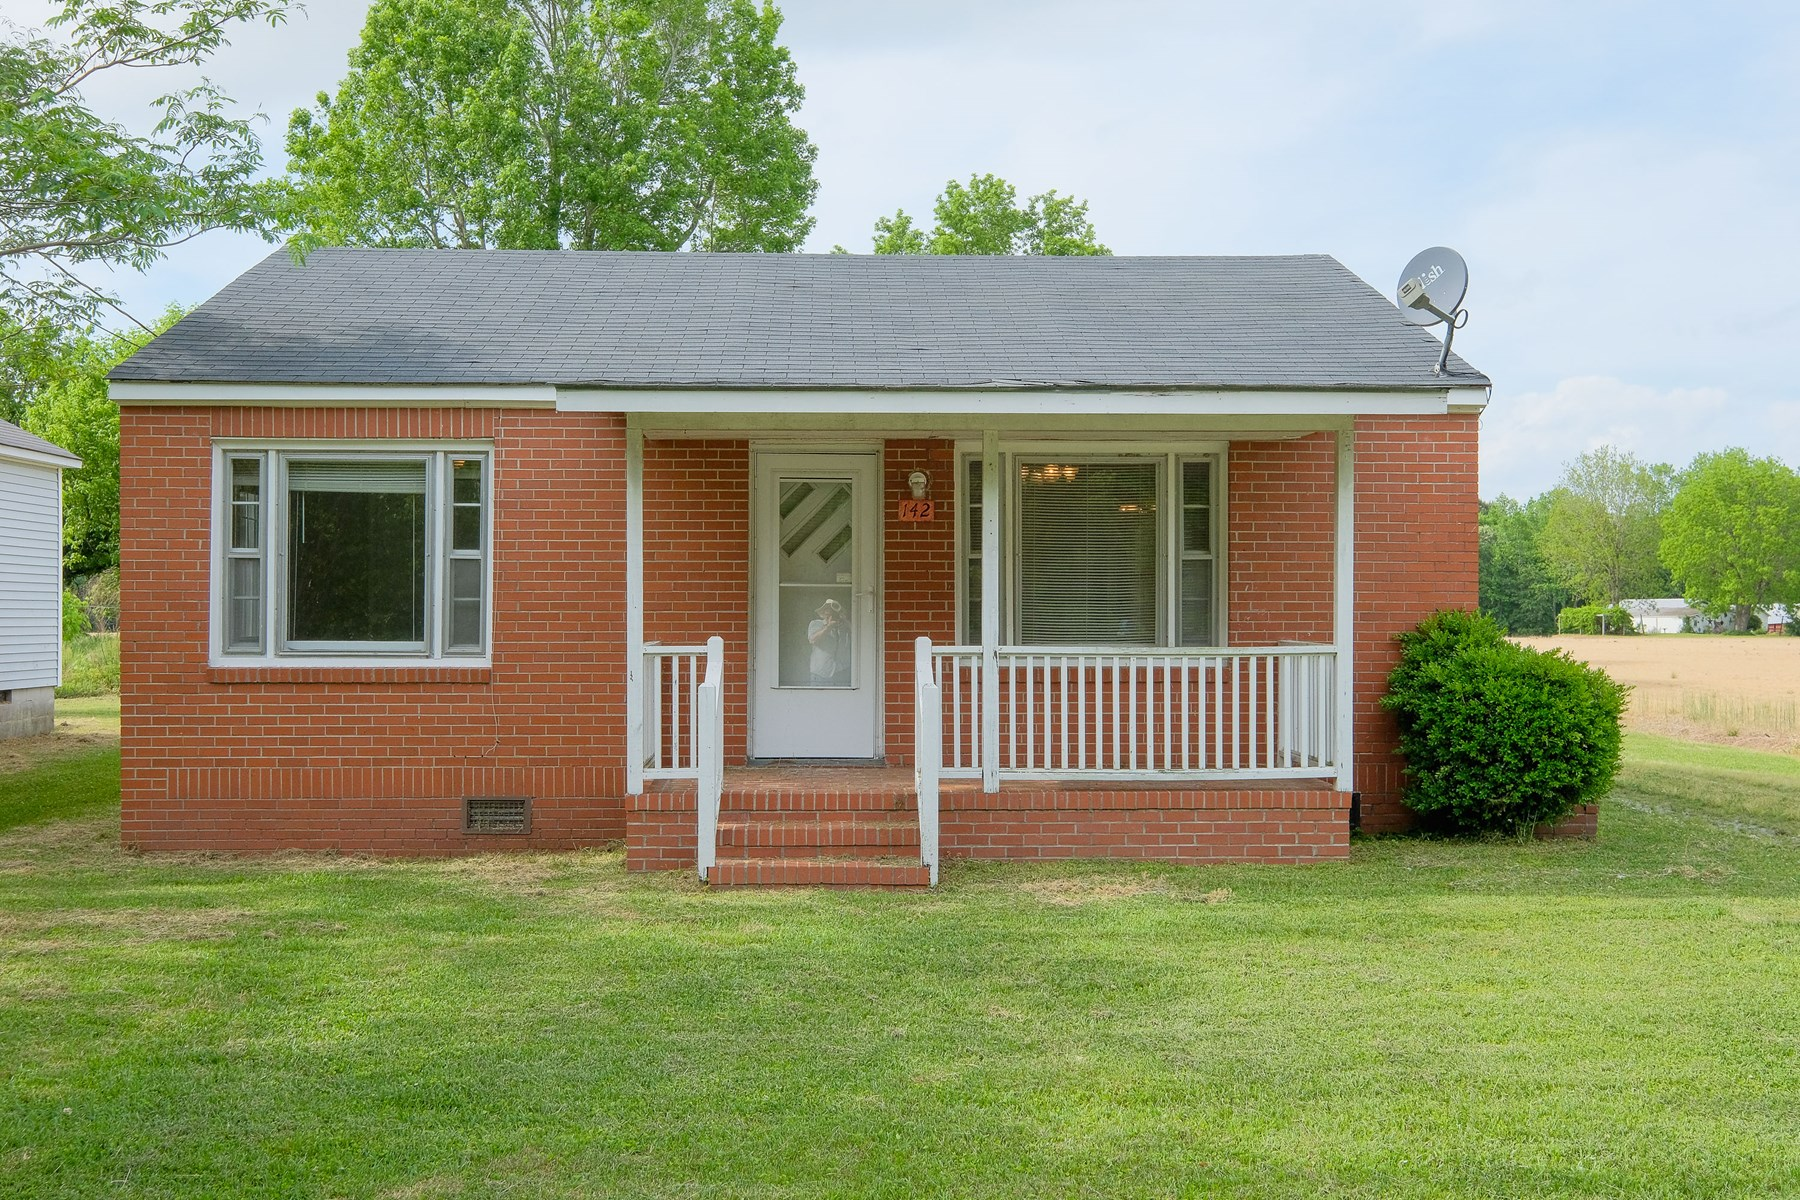 AUCTION-142 MEXICO RD EDENTON, NC-2 BEDROOM 1 BATH HOME